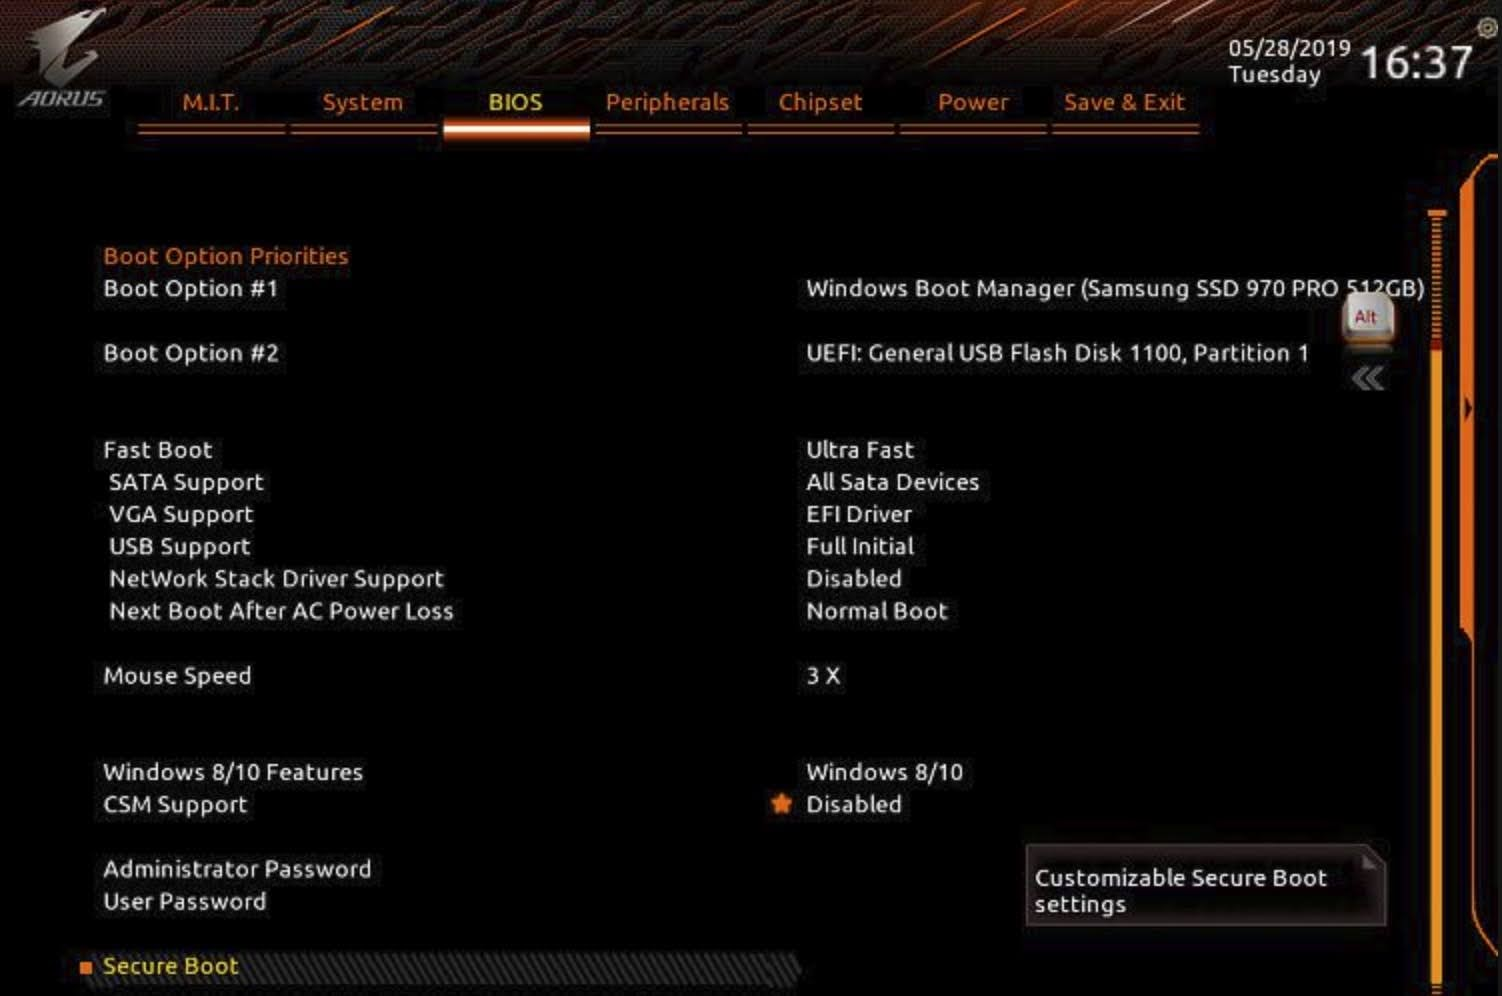 Enable TPM 2.0 for GIGABYTE motherboard using AORUS: Navigate to the BIOS tab, click the CSM Support option and change it to Disabled.